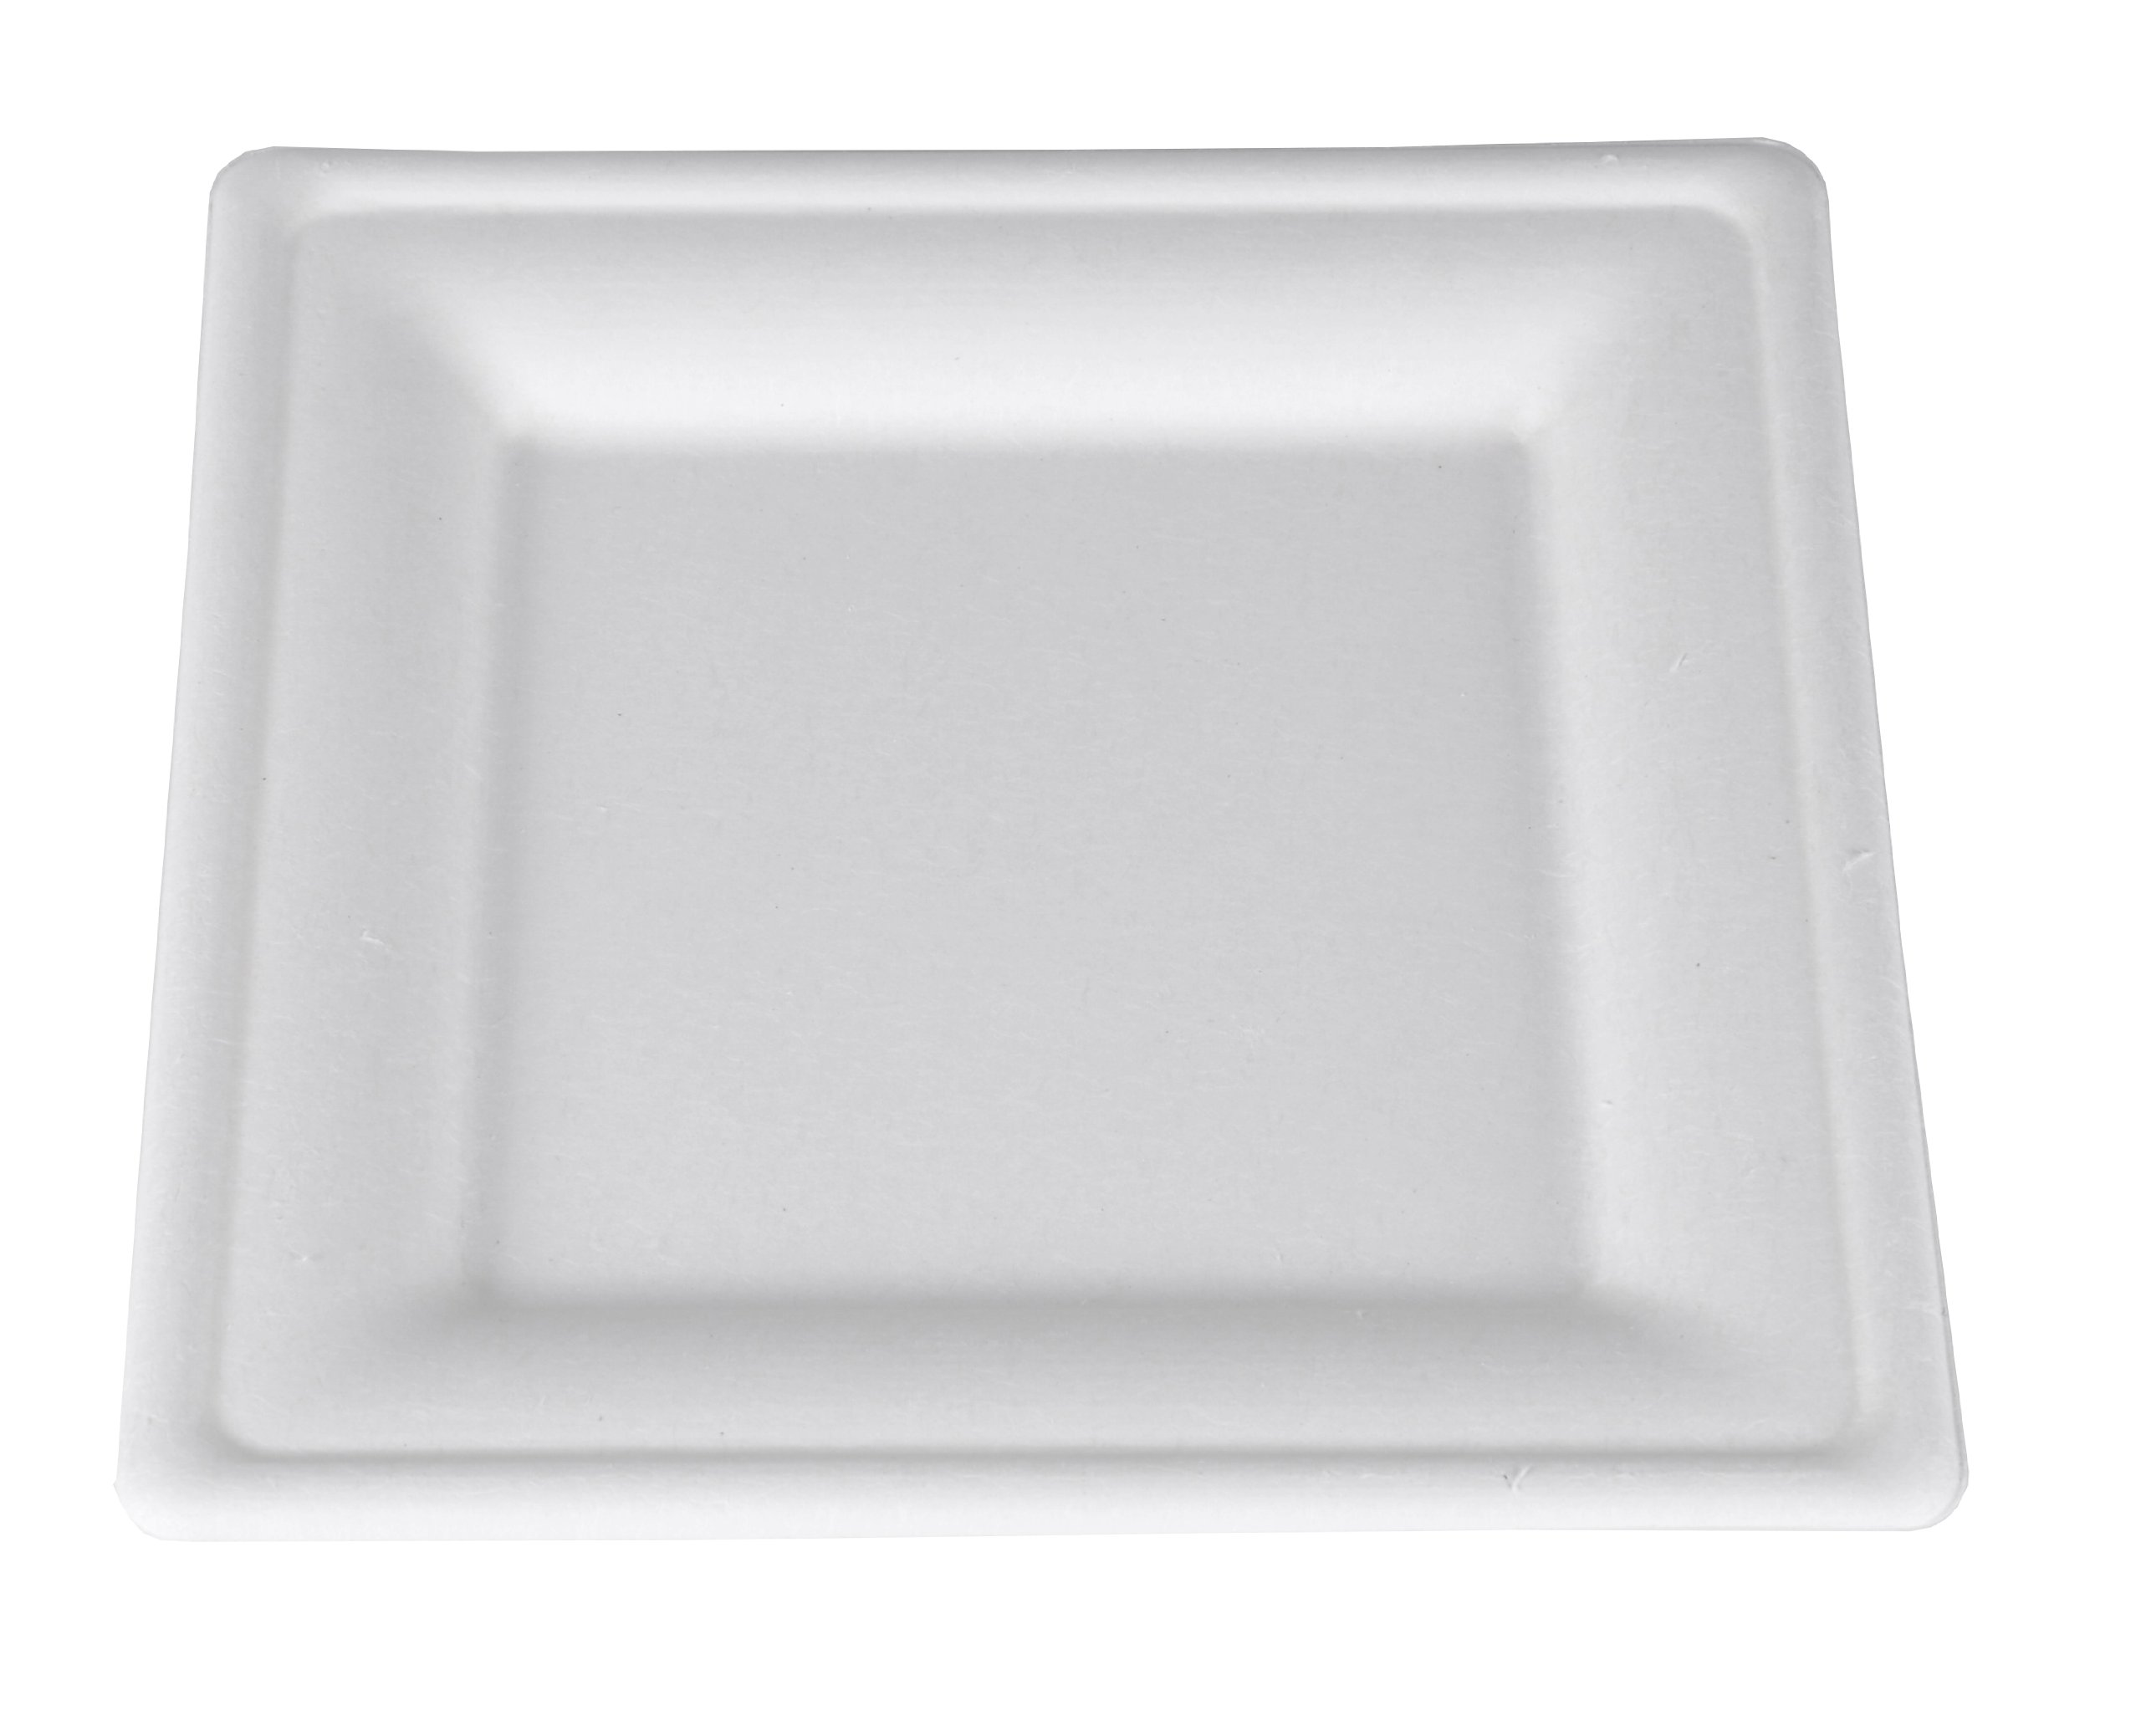 Southern Champion Tray 18630 ChampWare Square White Molded Fiber Heavy Weight Pulp Plate, 8'' L x 8'' W (Case of 500)